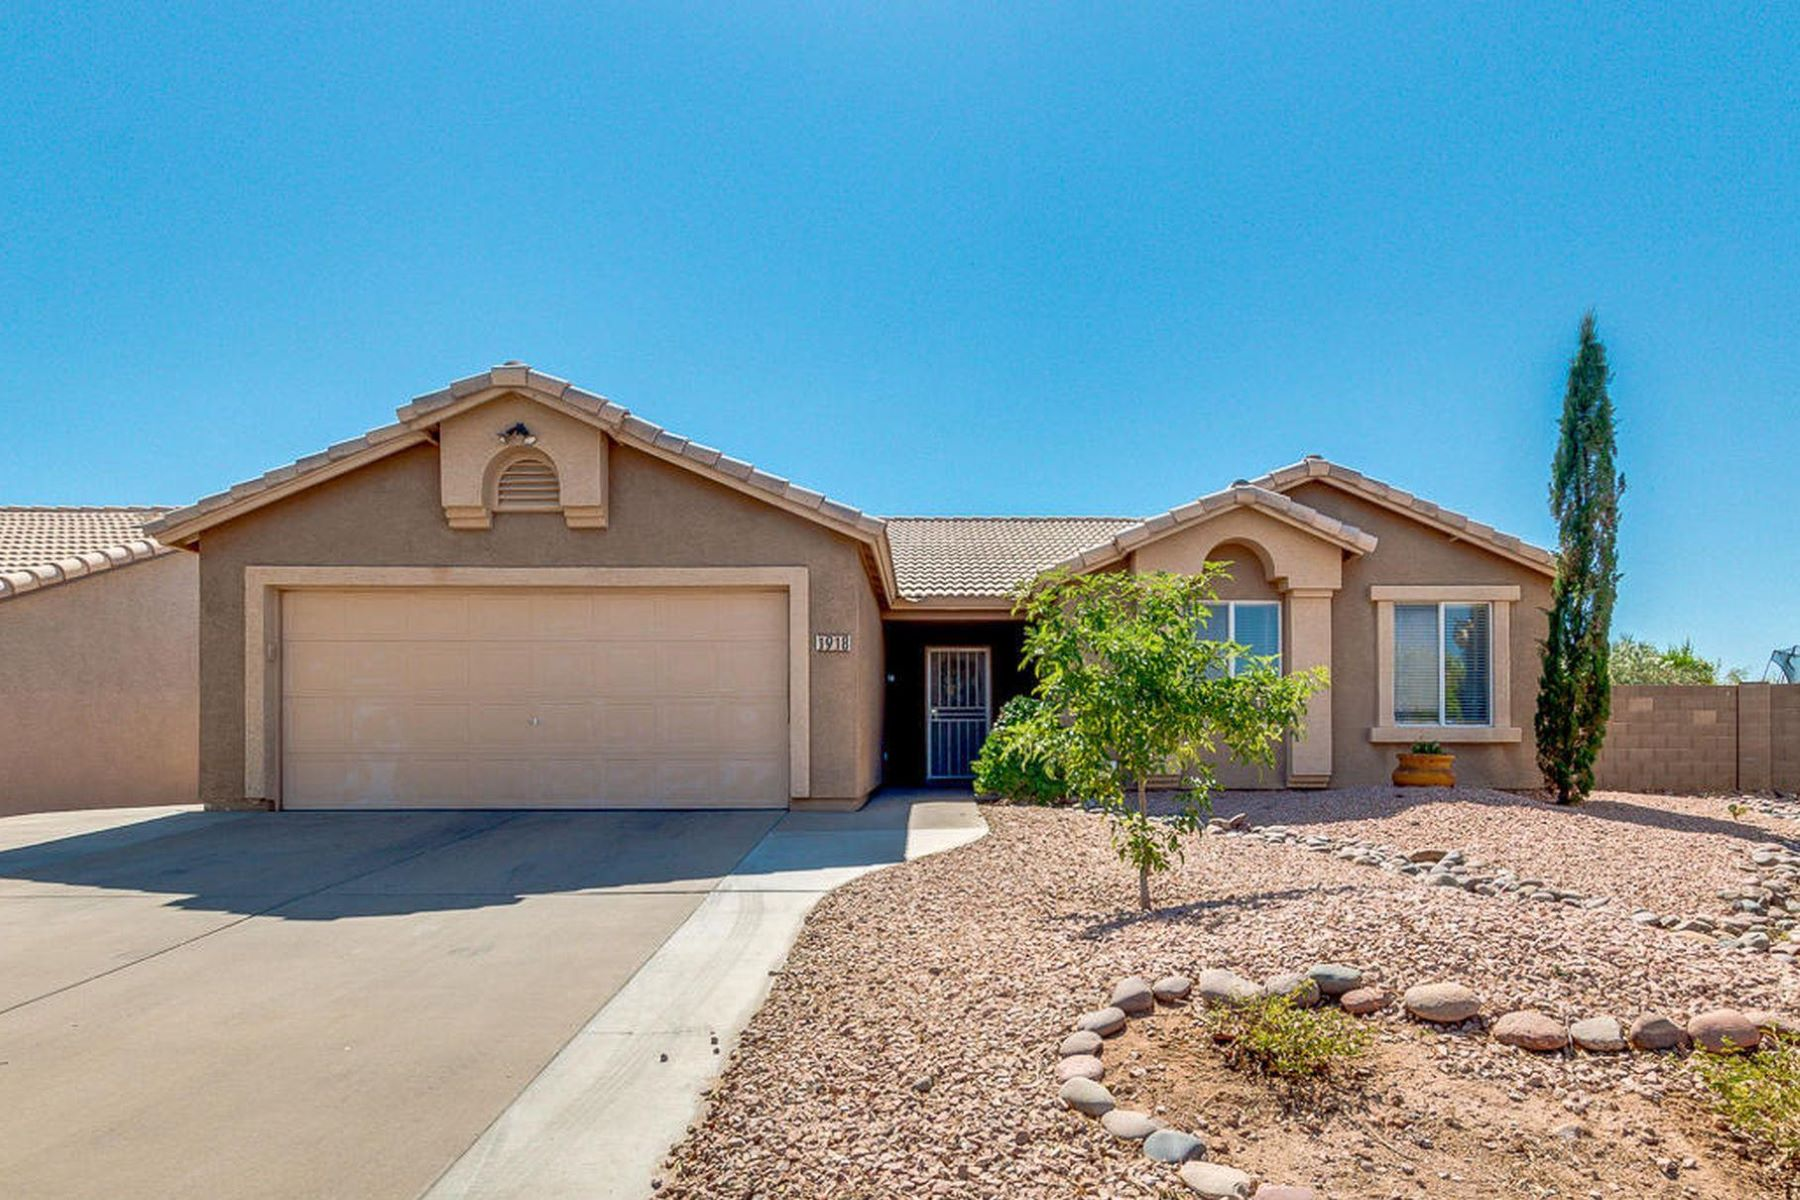 Single Family Homes for Sale at Renaissance Point 1918 S STARDUST DR Apache Junction, Arizona 85120 United States